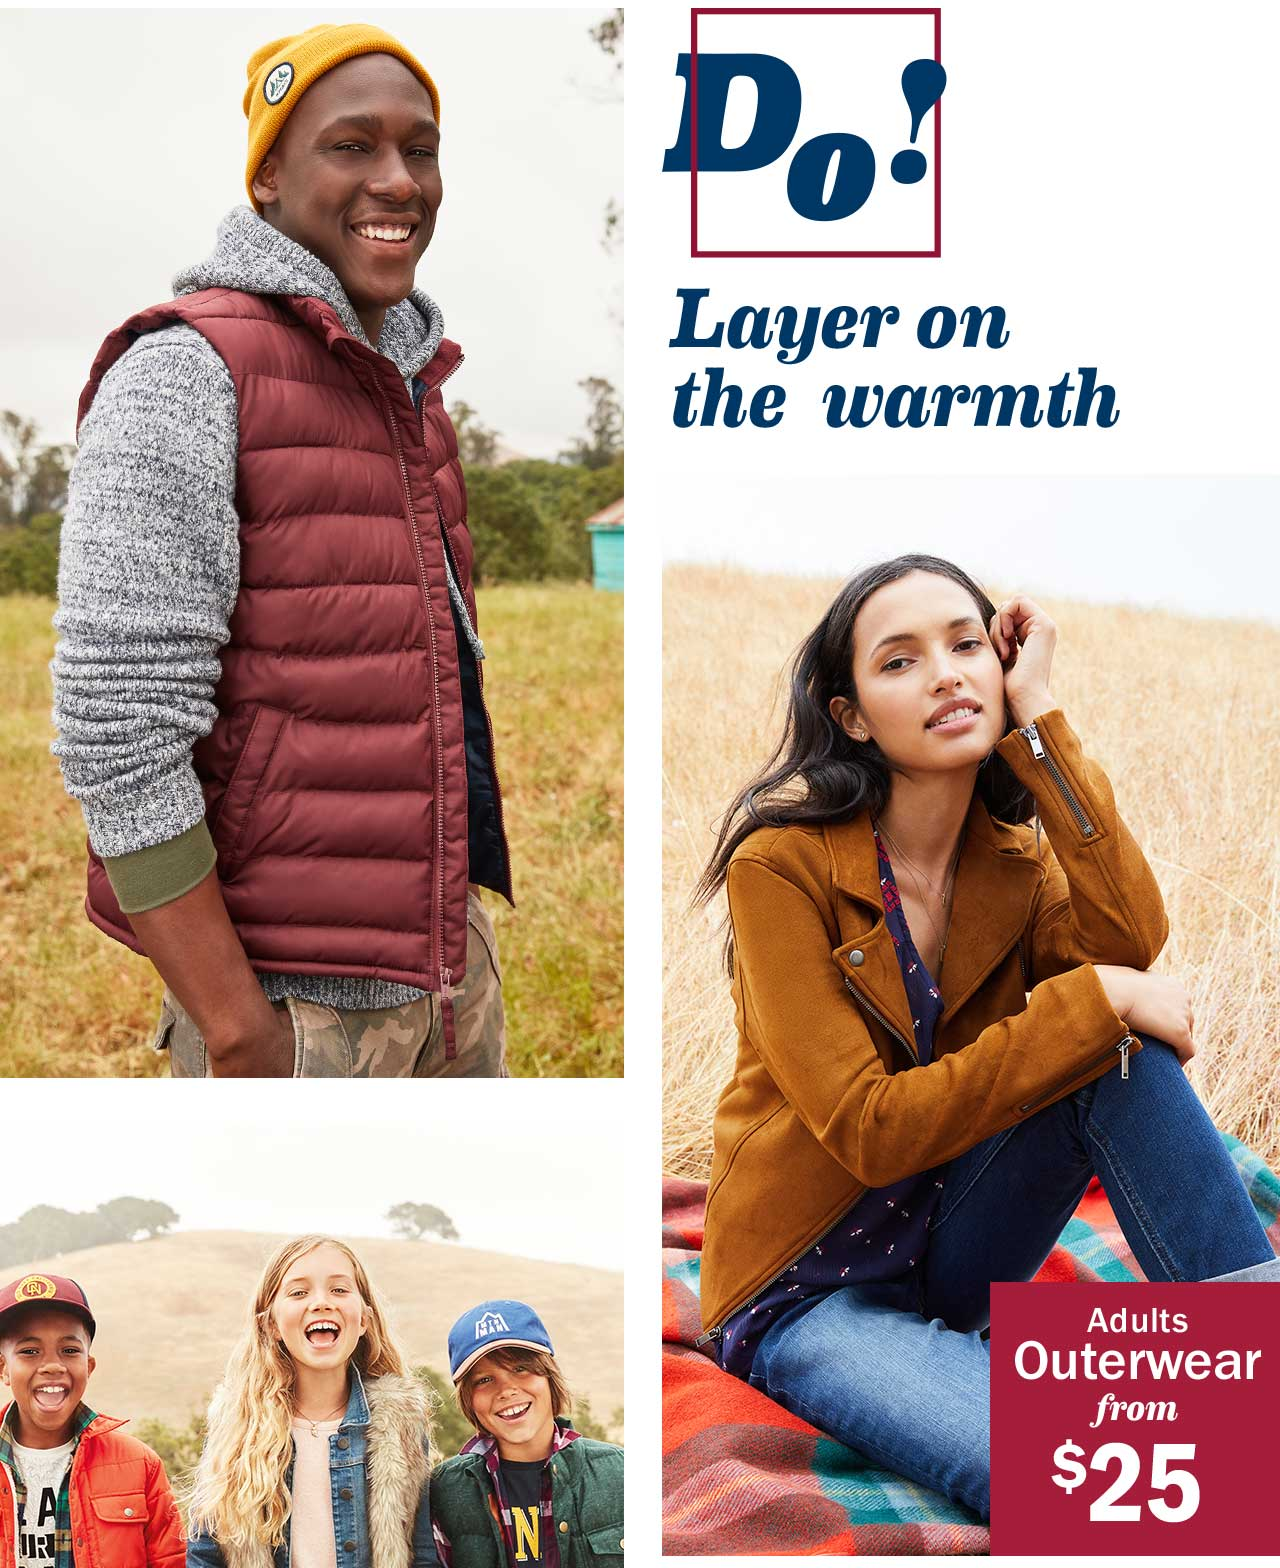 Do! Layer on the warmth | Adults Outerwear from $25